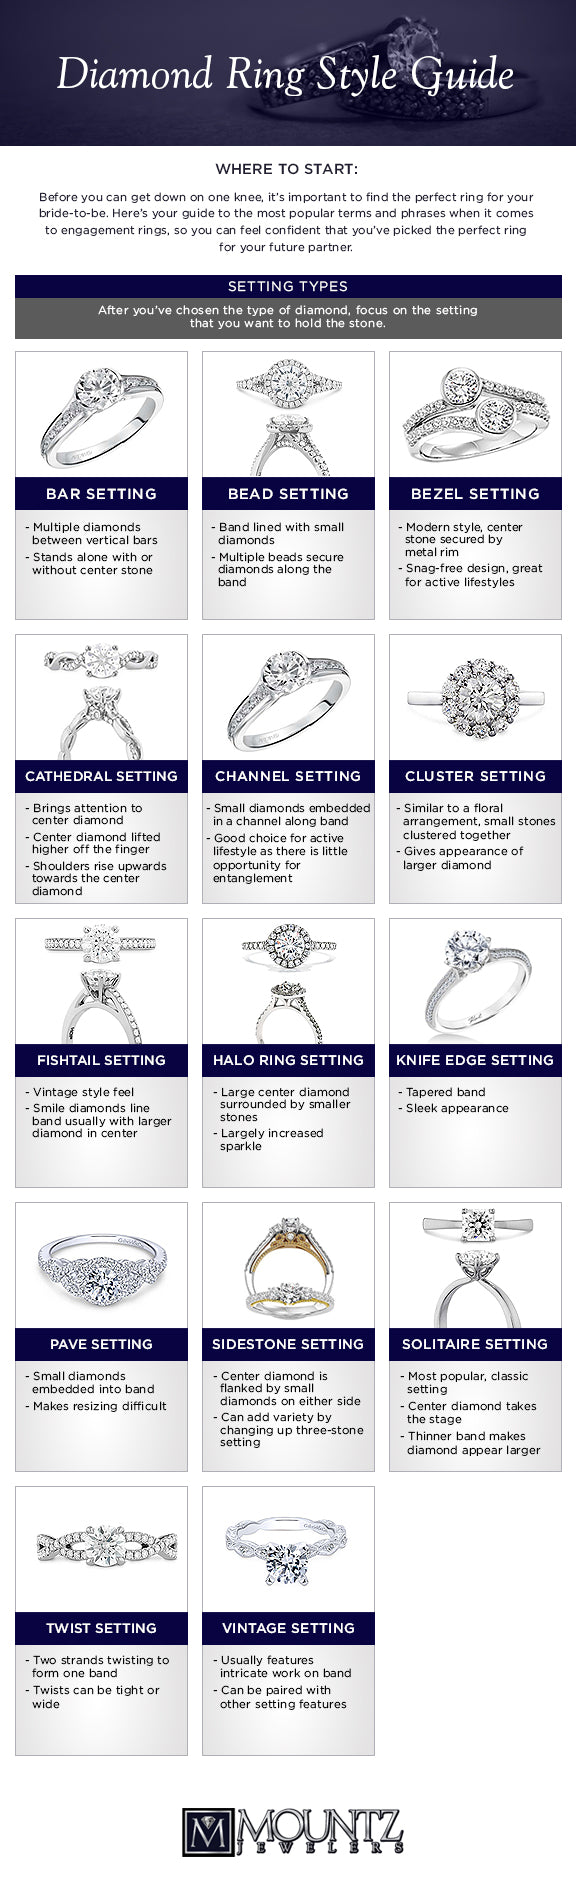 Diamond Ring Style Guide